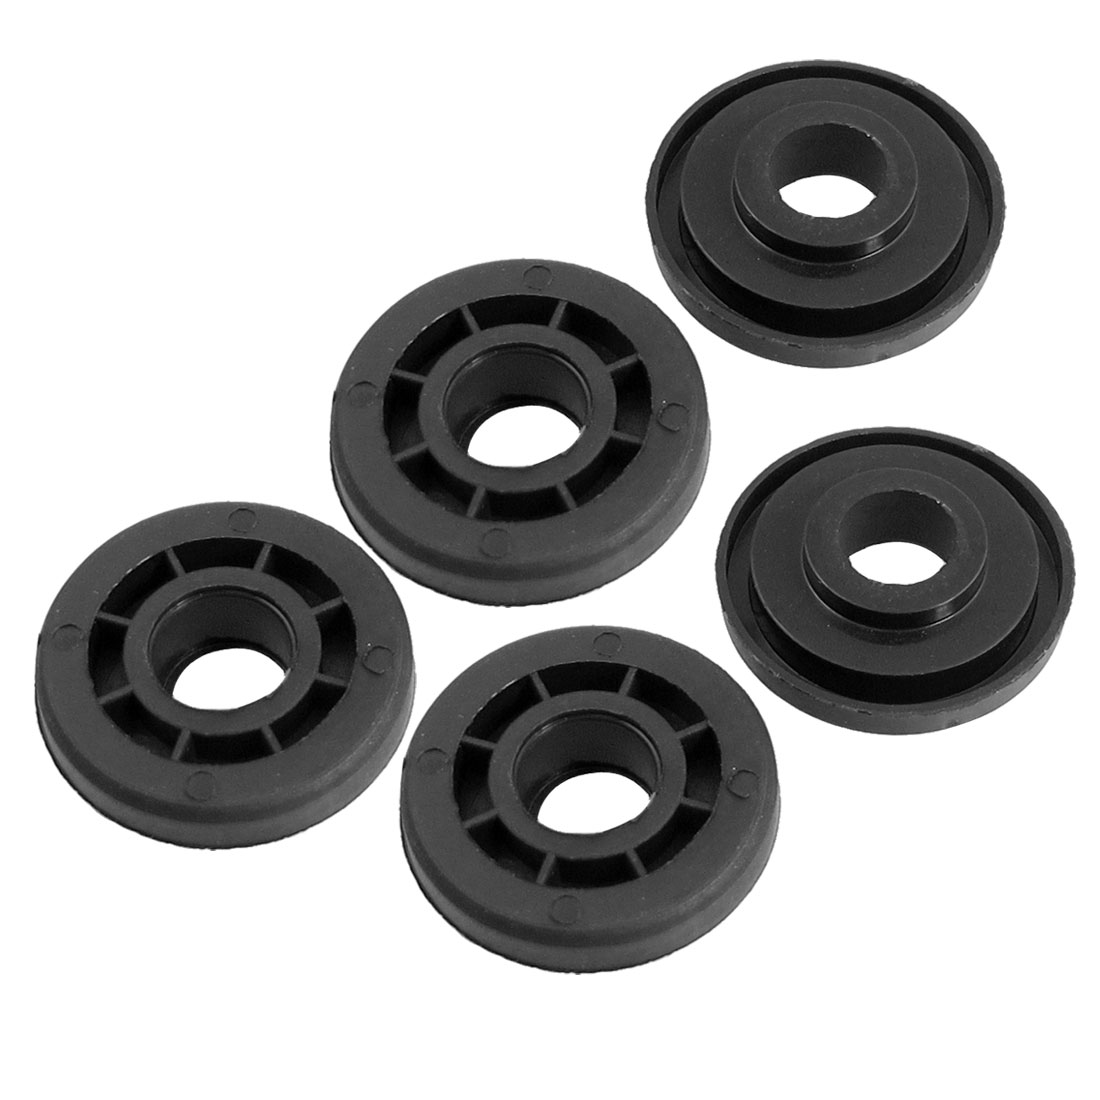 5 Pcs Repair Parts Plastic Bearing Pad for Bosch GWS6/8-100/125 Angle Grinder